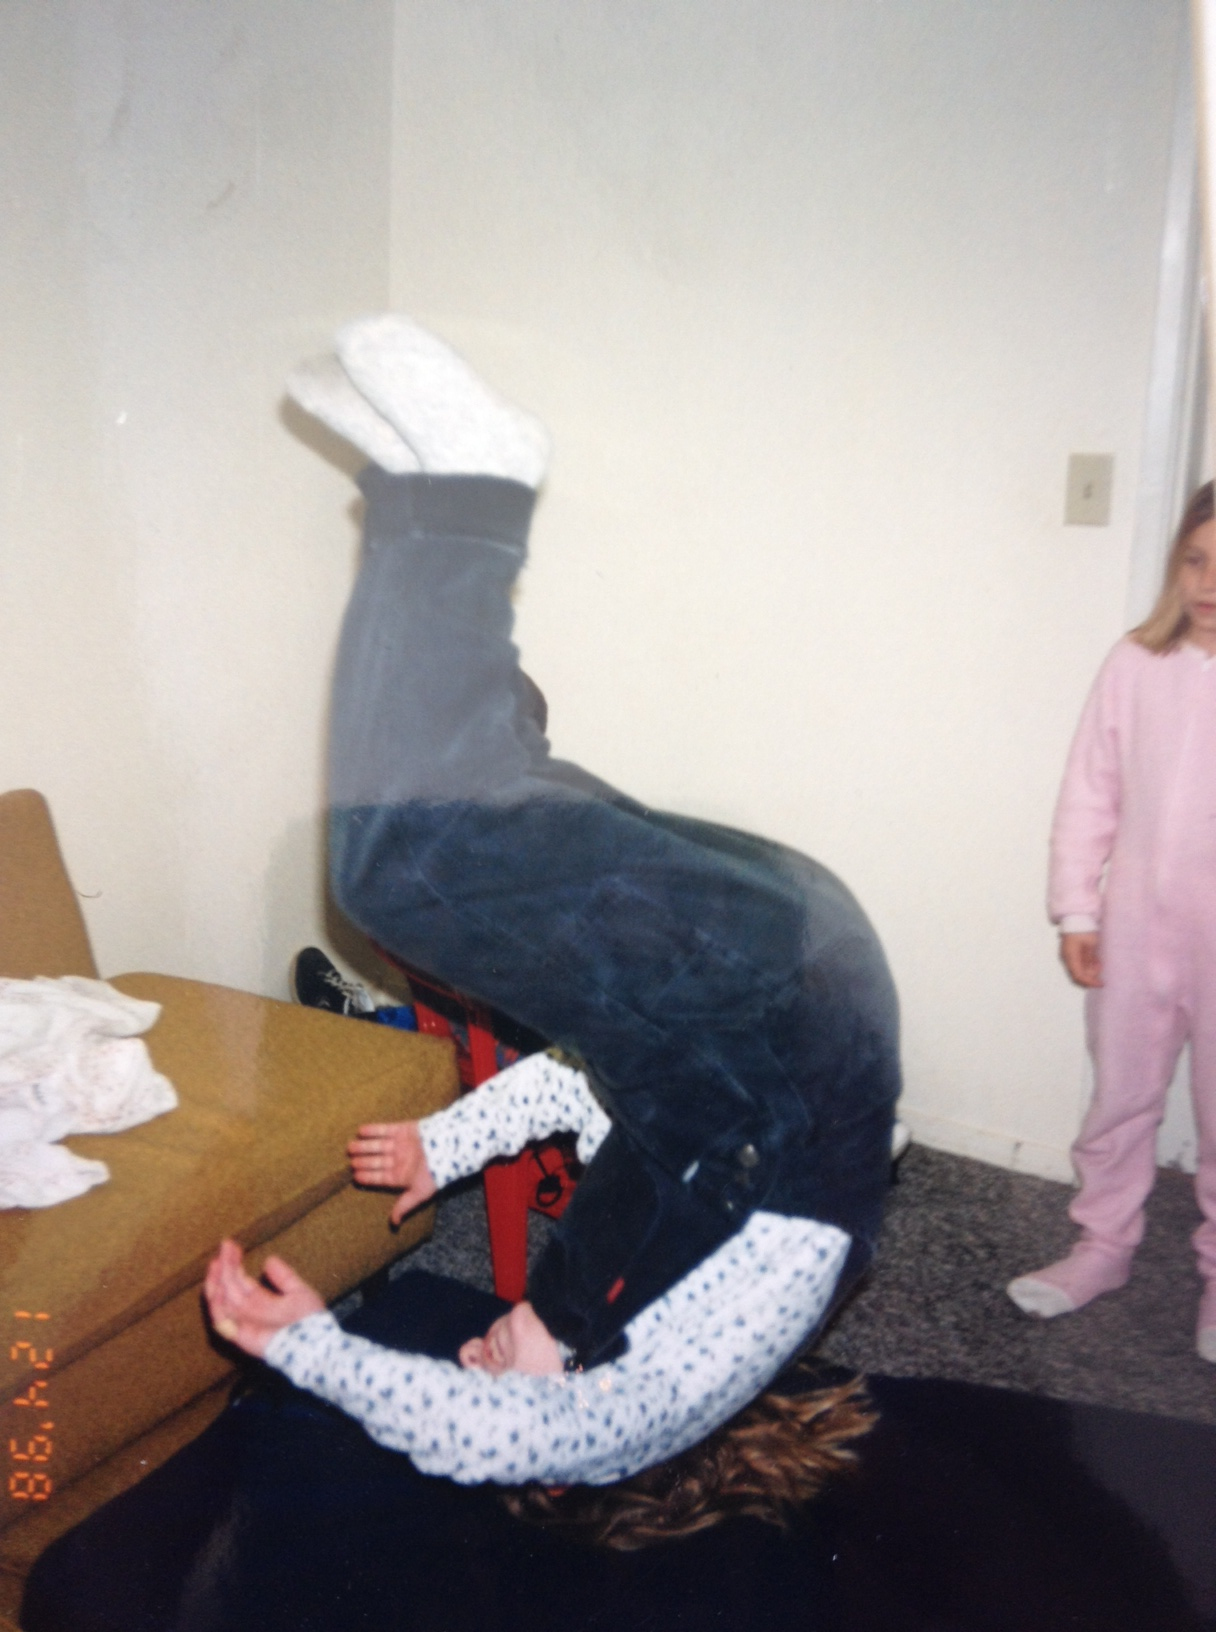 I was always doing flips off of furniture...